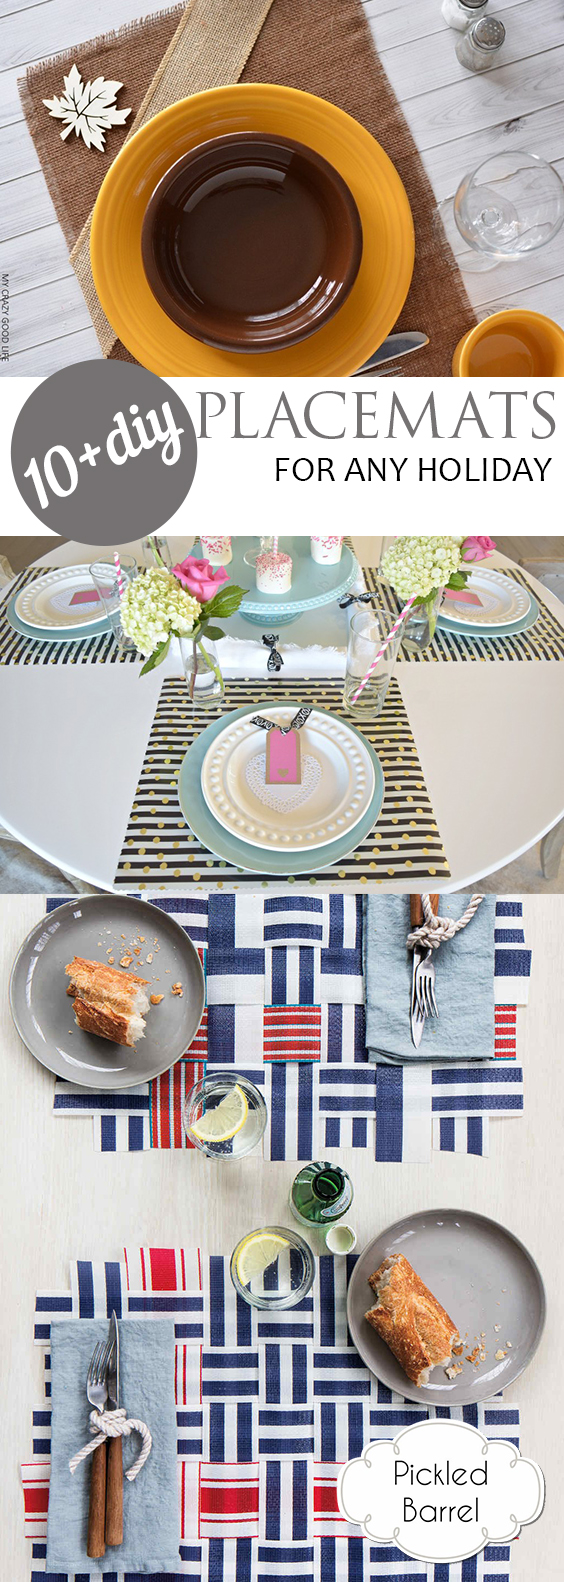 10+ DIY Placemats for Any Holiday| Placemats, DIY Placemats, Holiday Placemats, DIY Home, DIY Home Decor, Home Decor Hacks, Popular Pin #HomeDecor #DIYHome